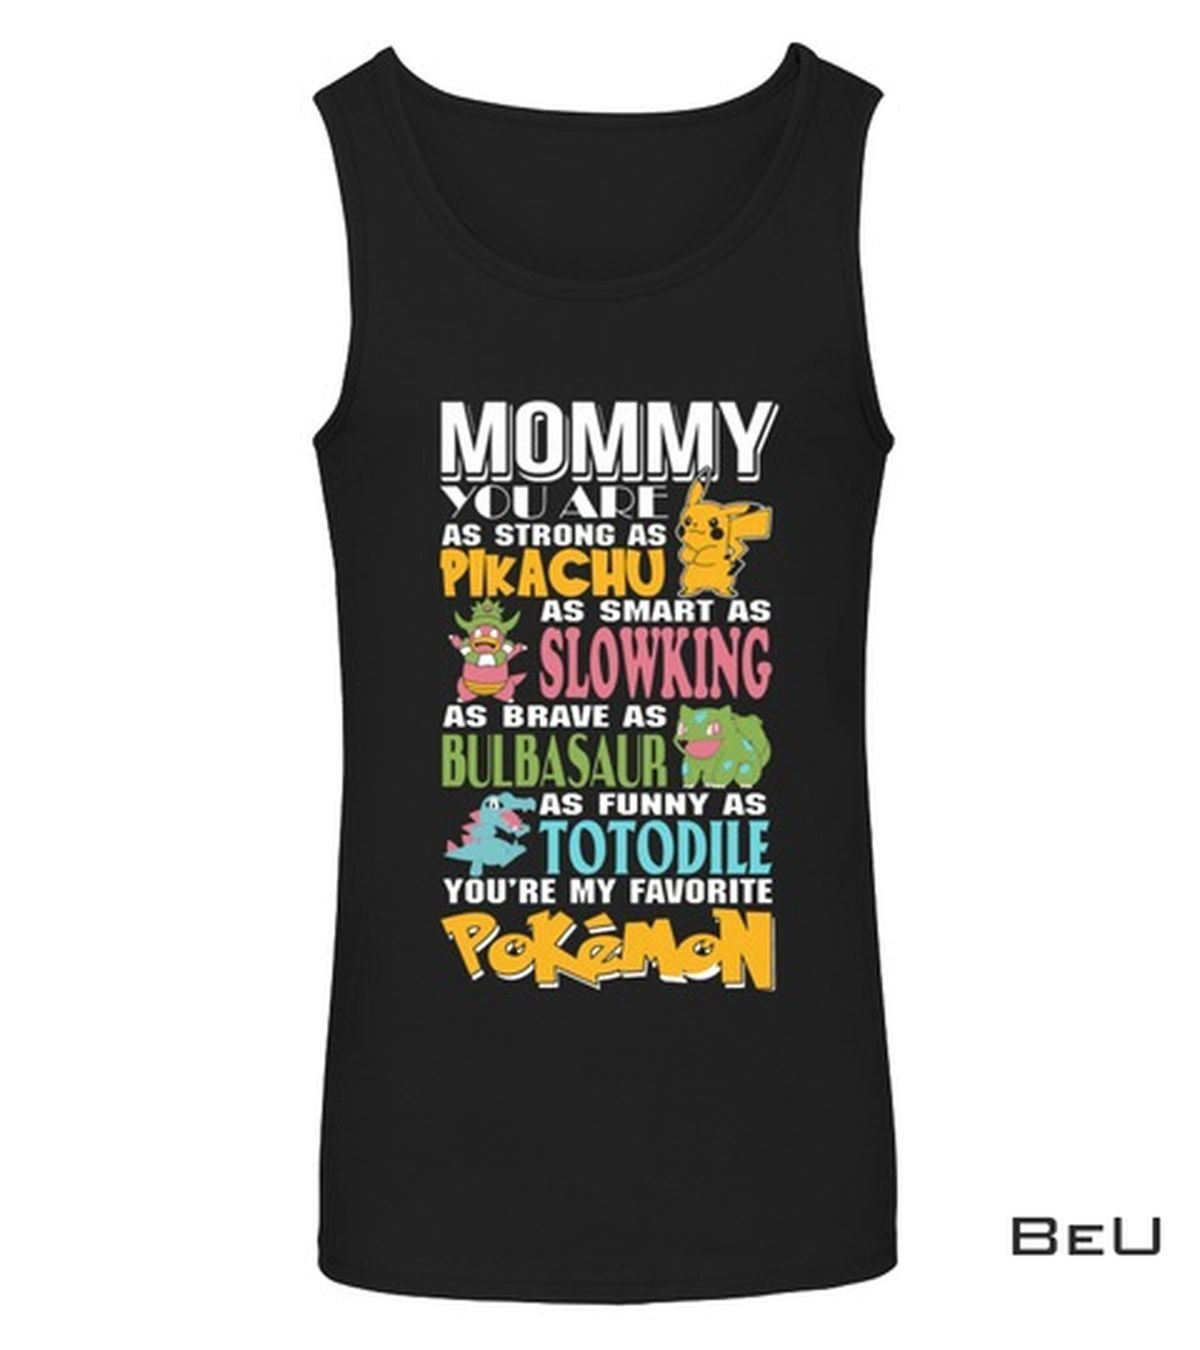 Discount Mommy You Are As Strong As Pikachu As Smart As Slowking Shirt, hoodie, tank top